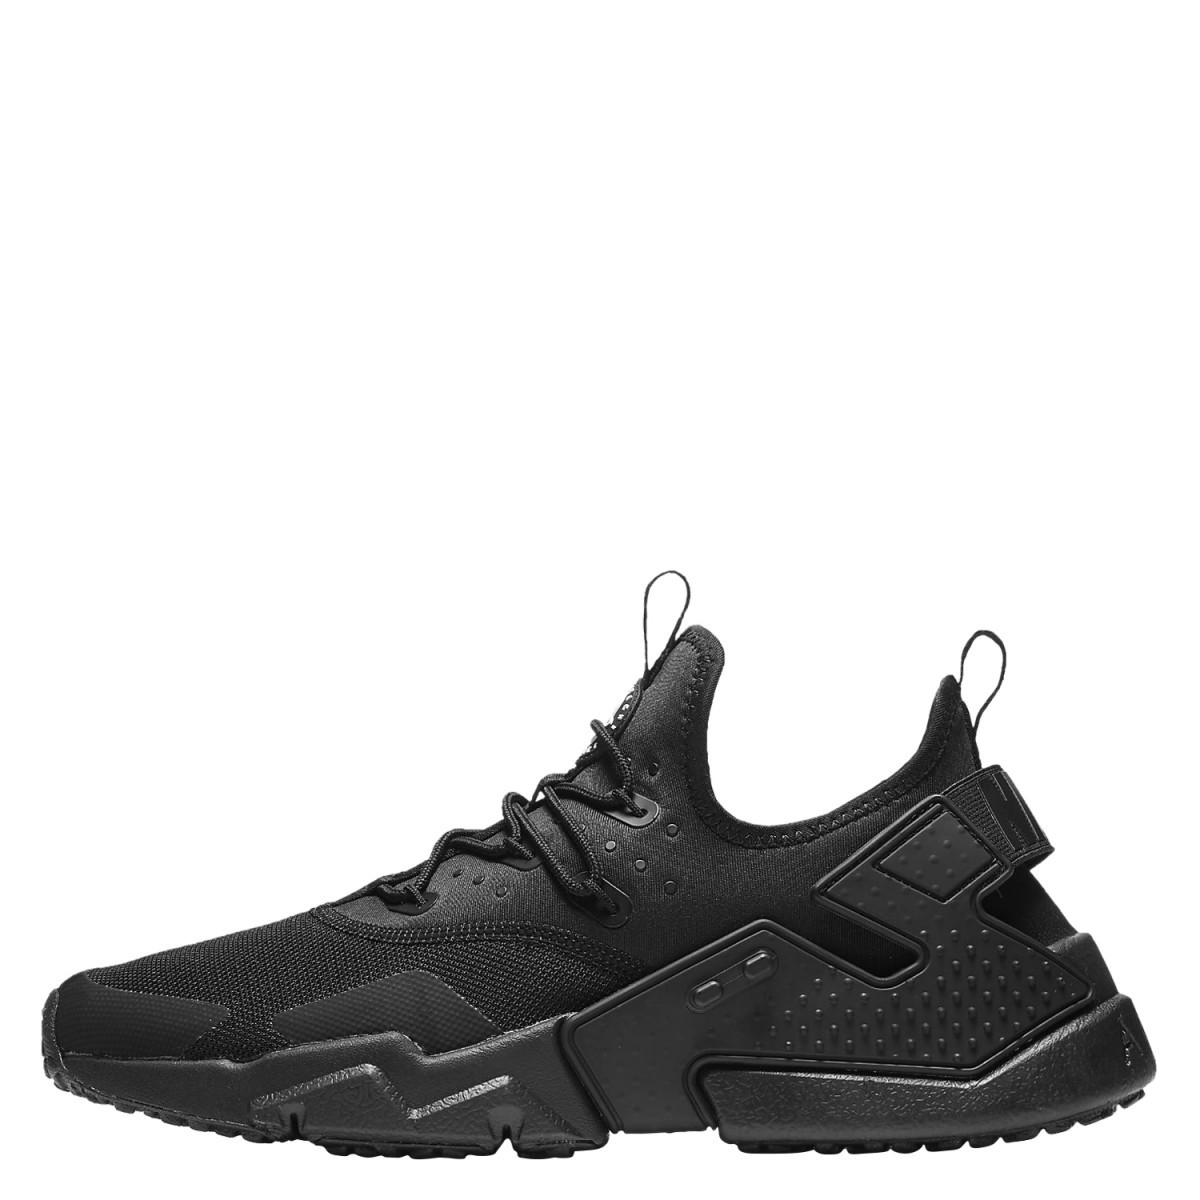 fa05d2c290 Basket Nike Air Huarache Drift - Ref. AH7334-003 - DownTownStock.Com